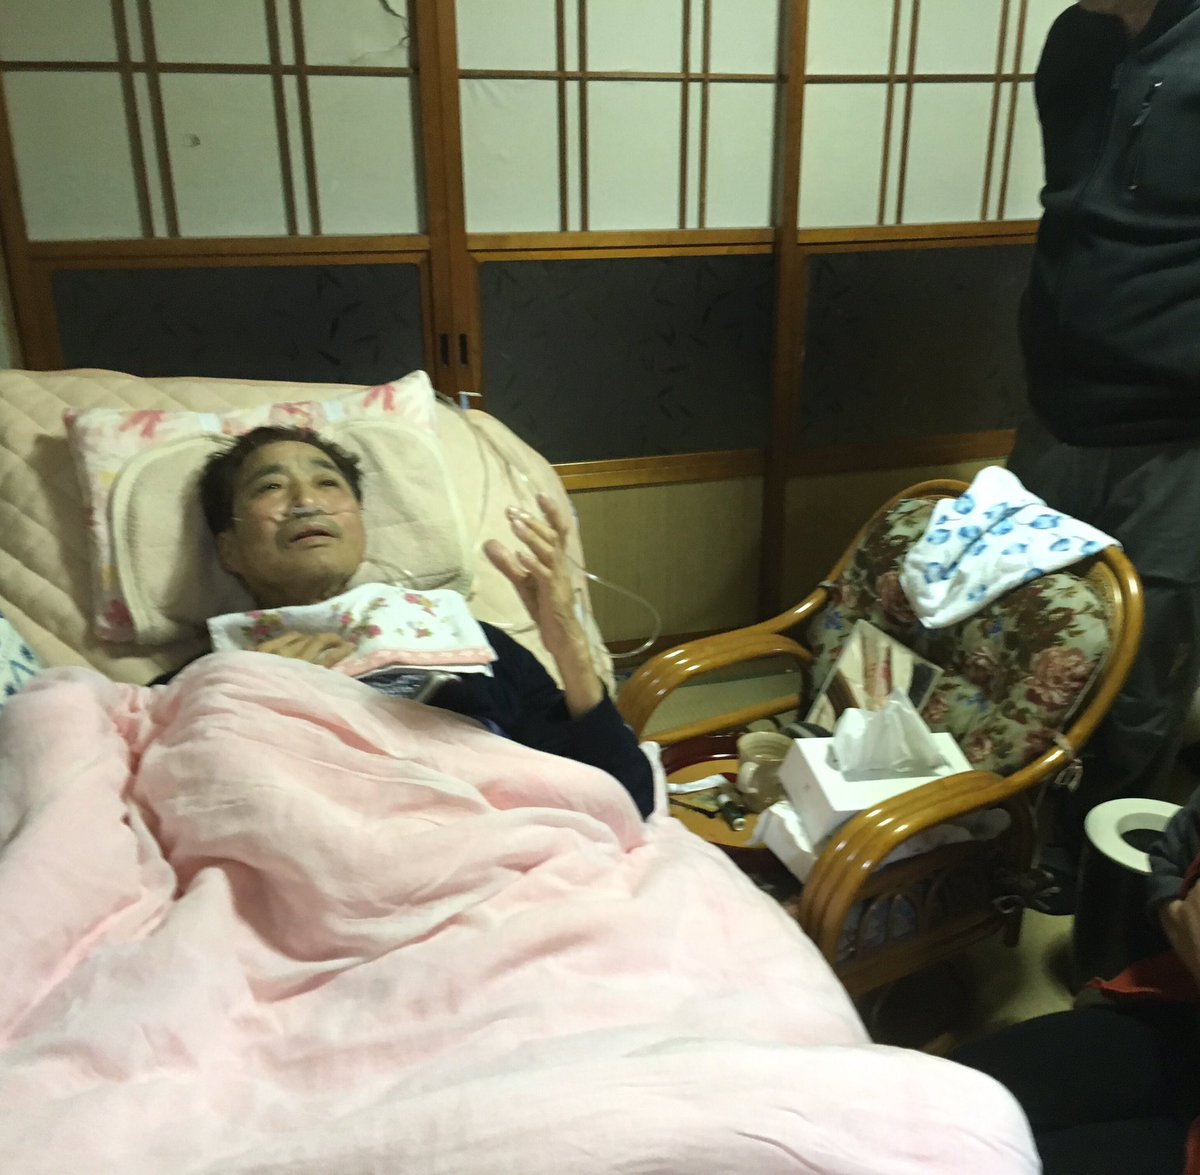 From his bed, Mr Hata told stories and entertained visitors w/ jokes. https://t.co/QoPilynCIs